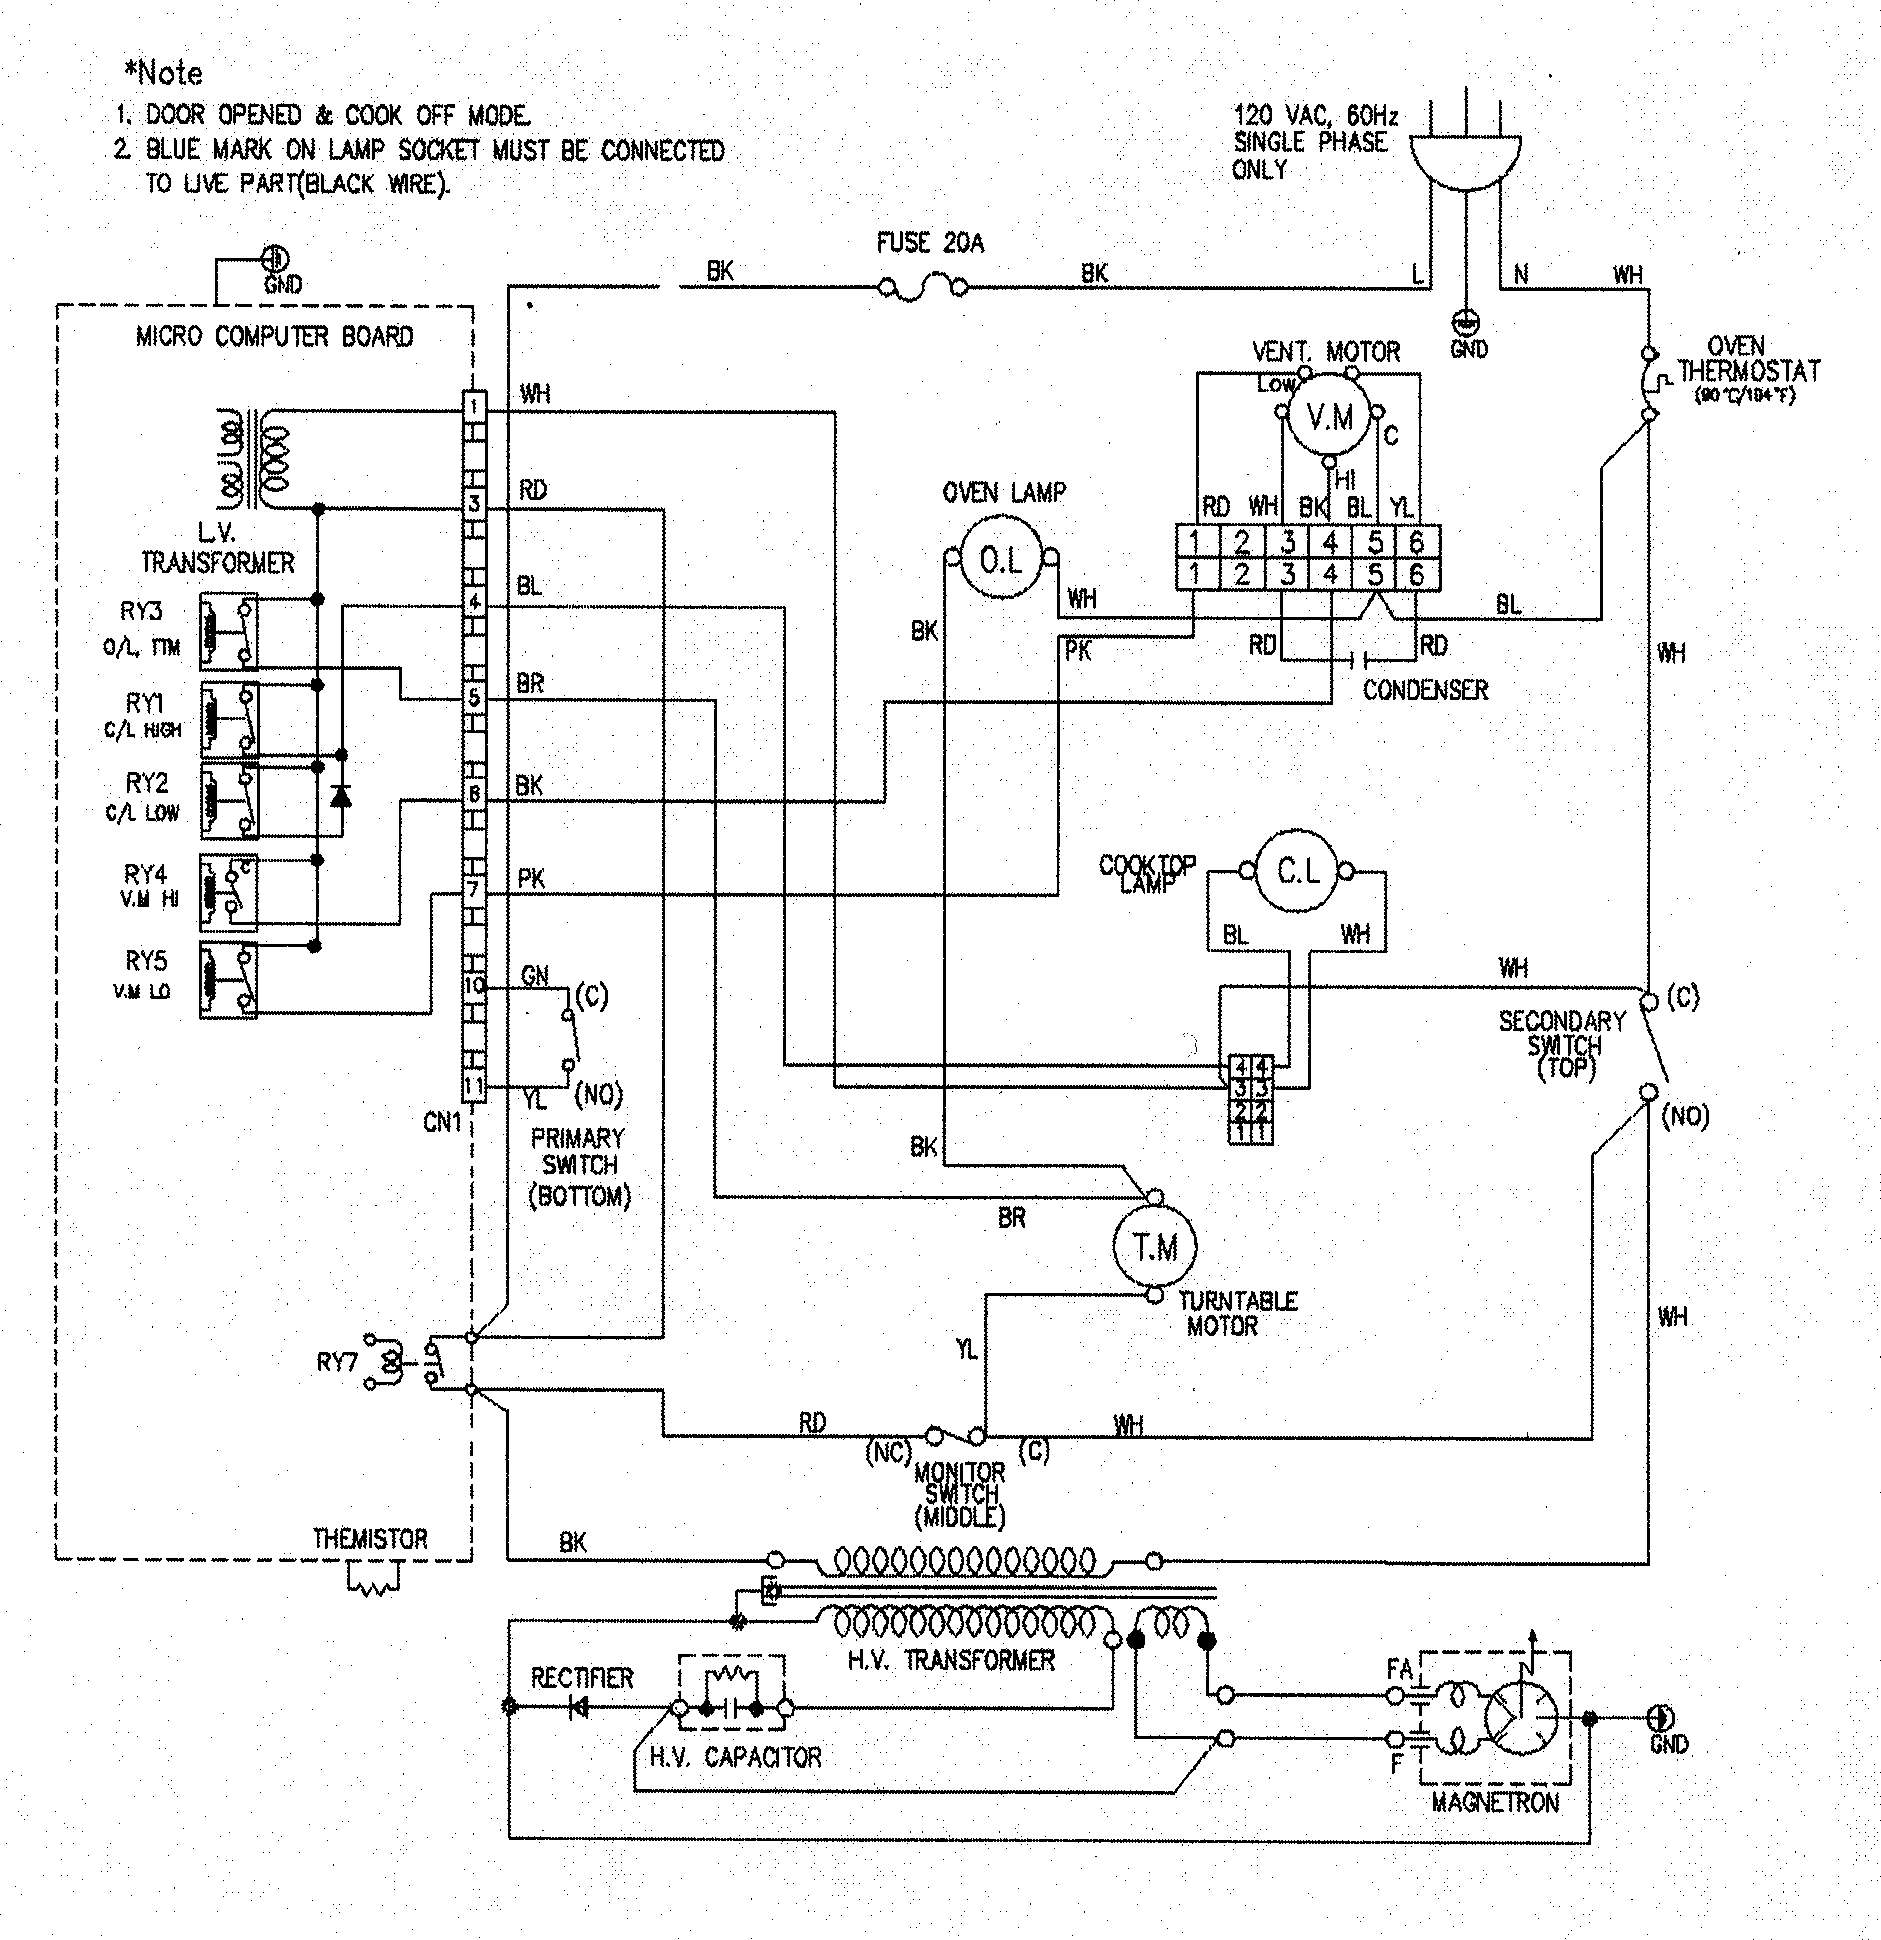 small resolution of jbp24 ge oven wiring schematic wiring diagrams konsult ge schematic diagrams